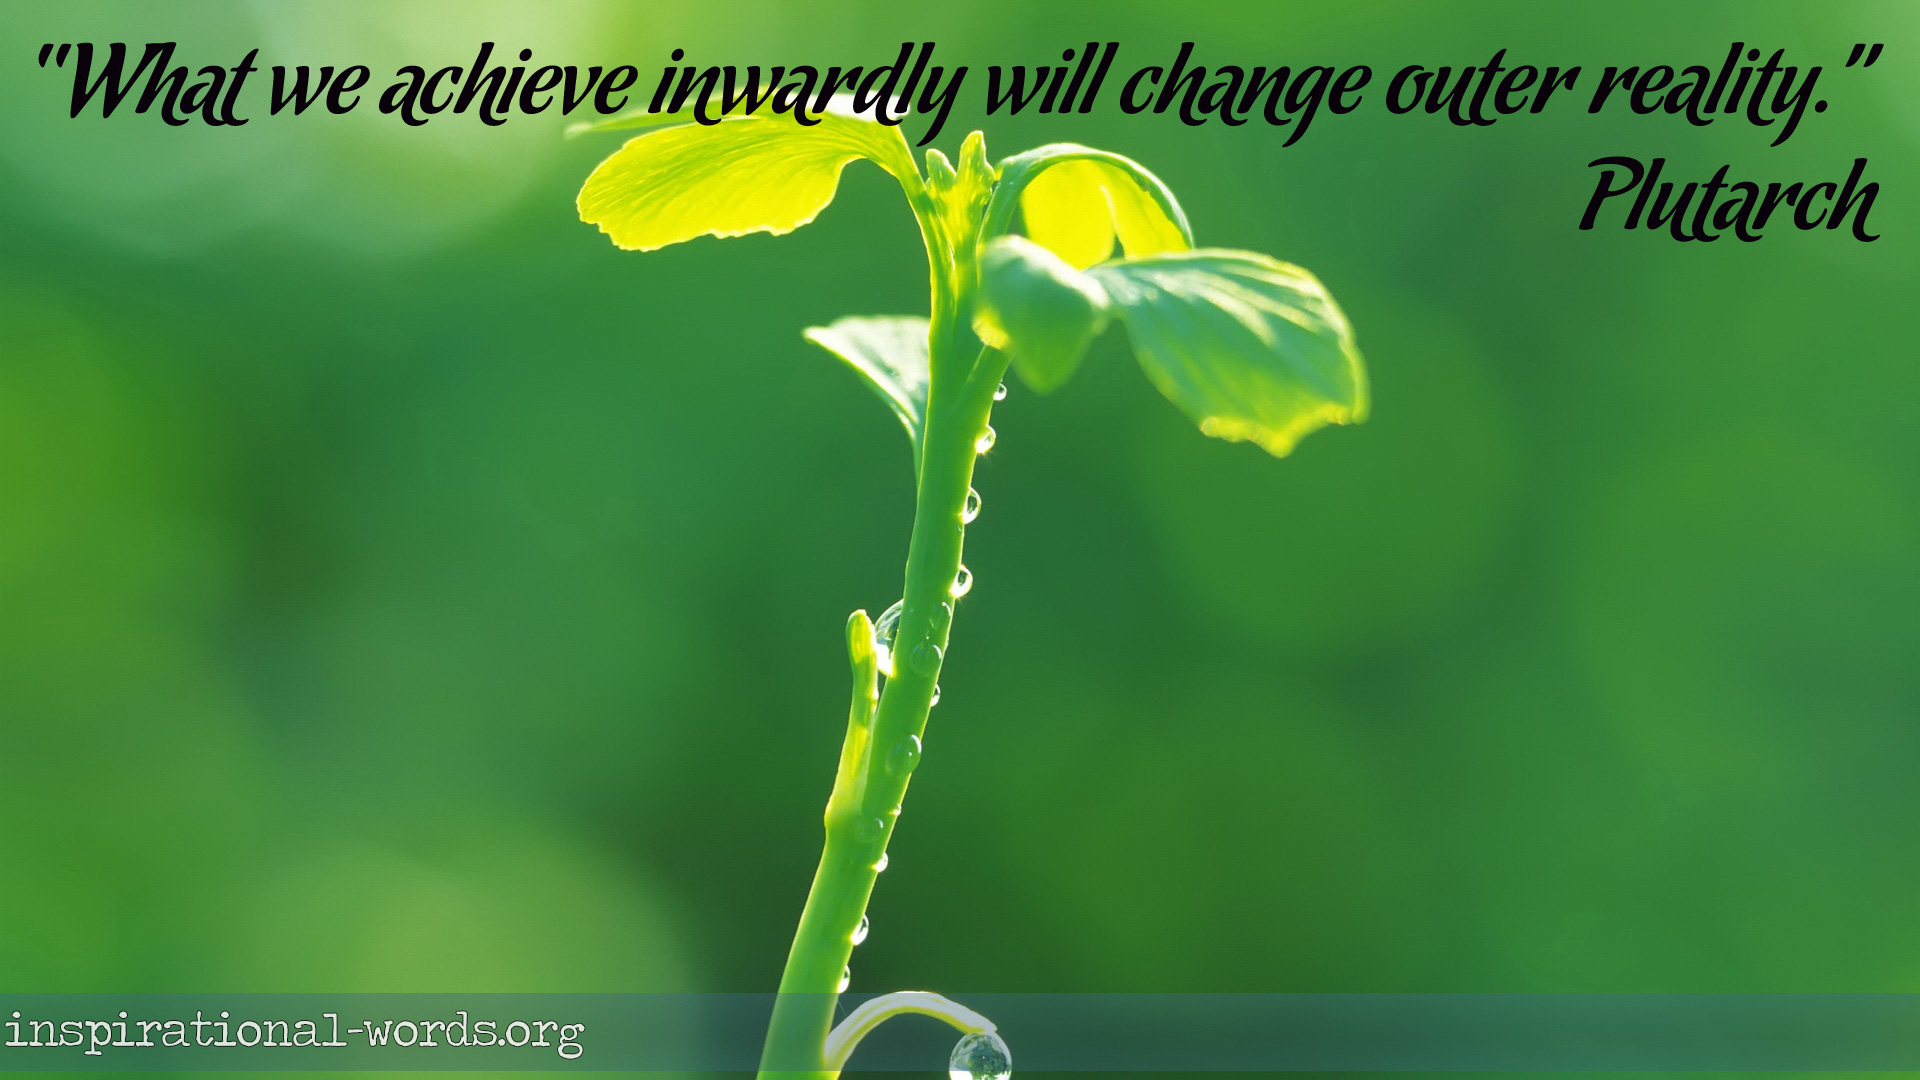 Inspirational Wallpaper Quote by Plutarch